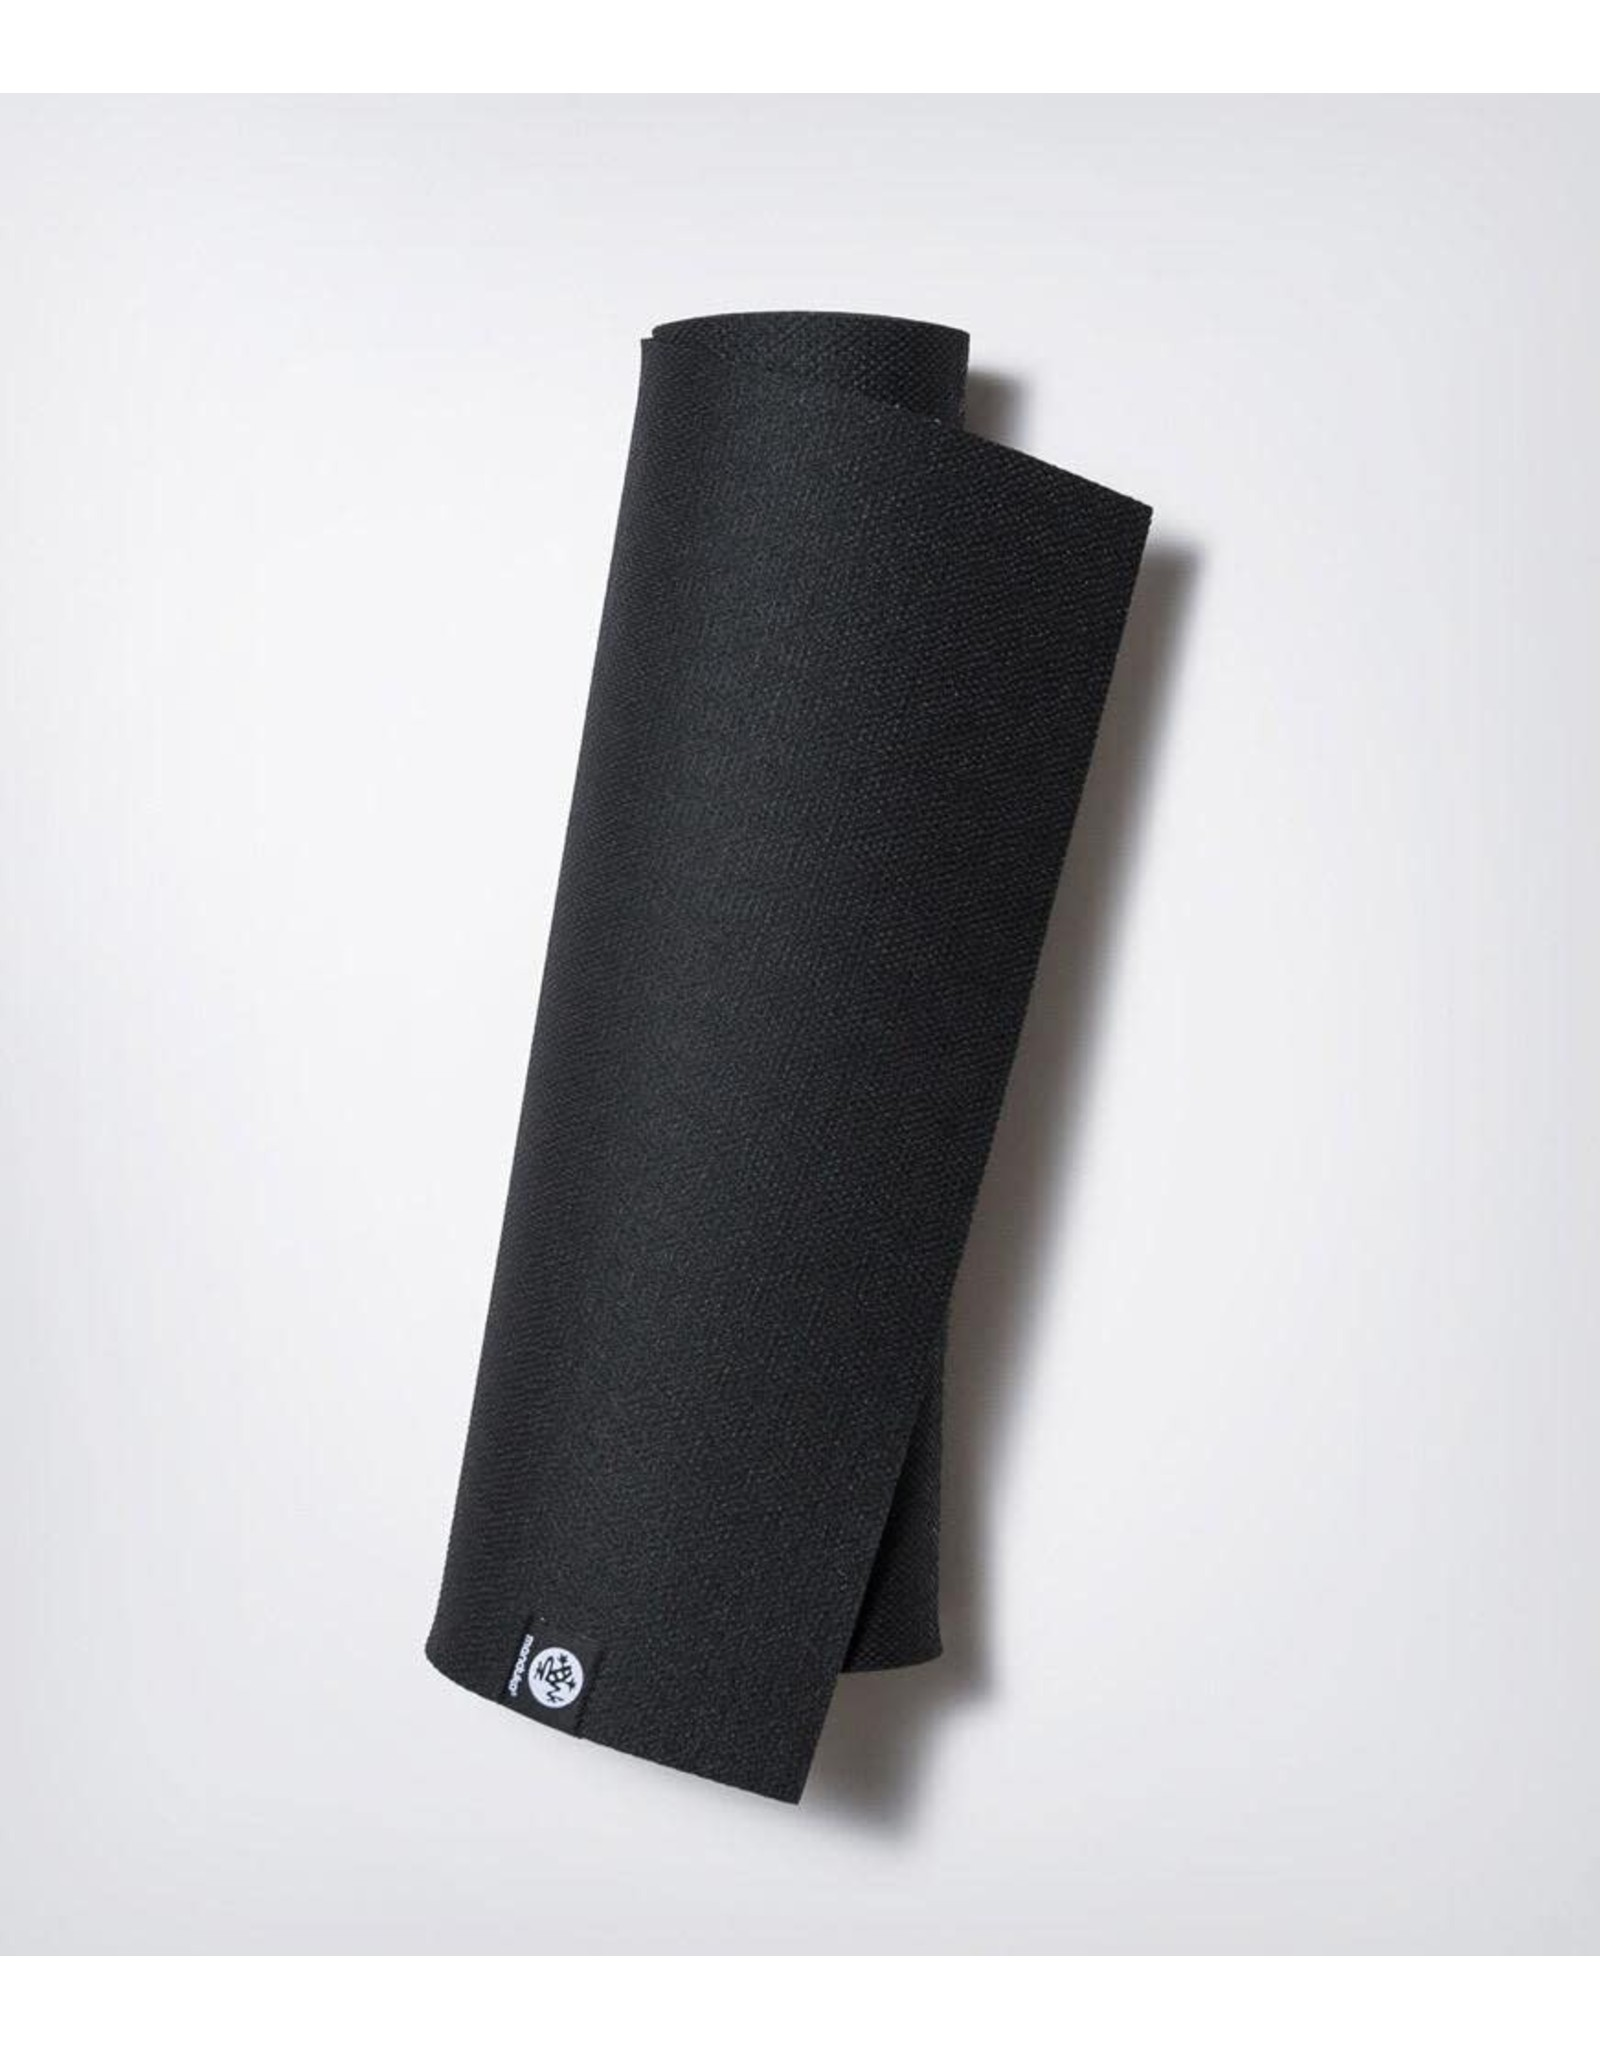 Manduka Manduka X training yoga mat-71 inch-Black 5mm